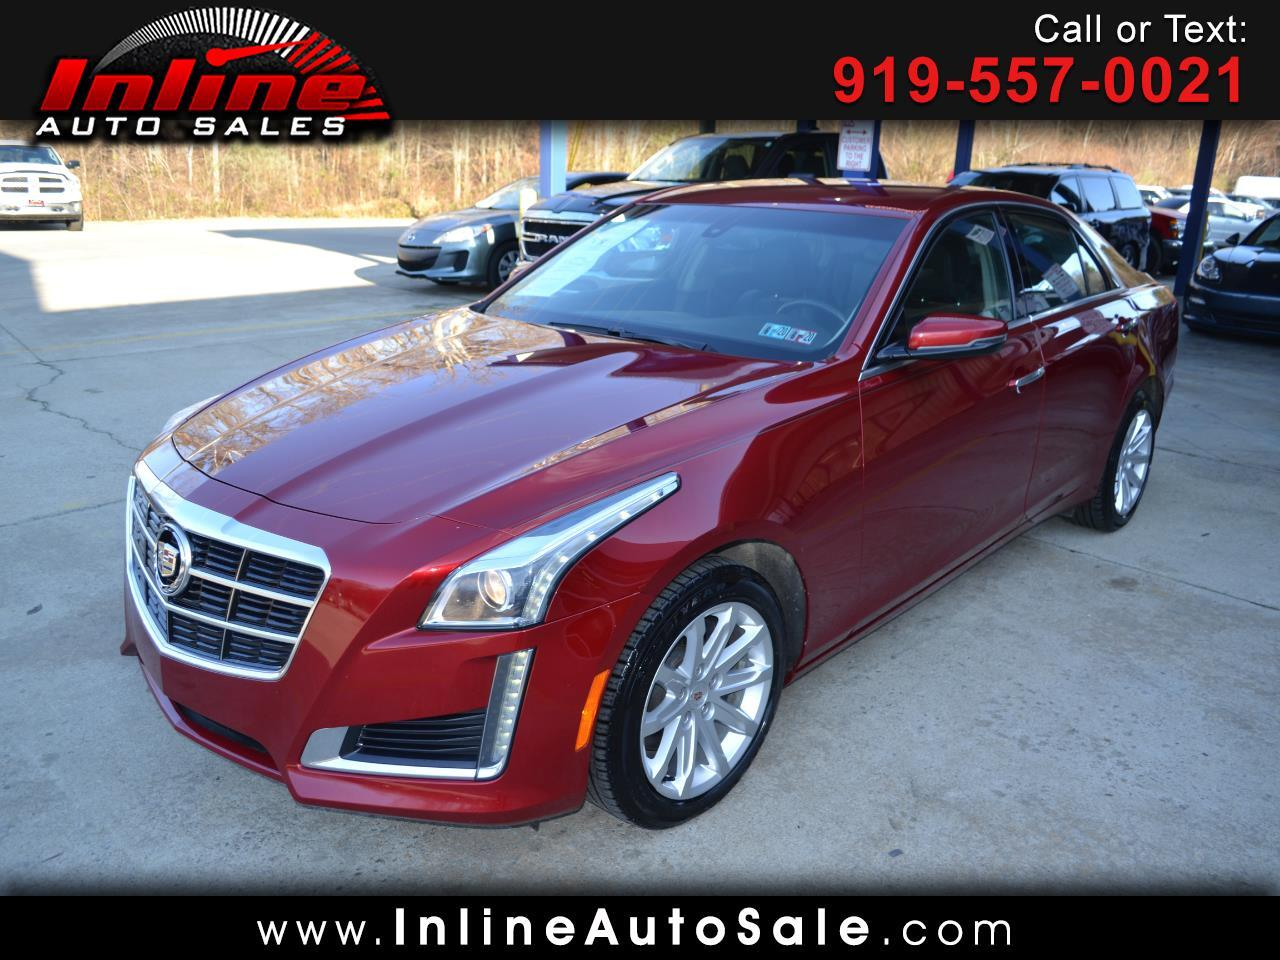 Cadillac CTS Sedan 4dr Sdn 2.0L Turbo AWD 2014